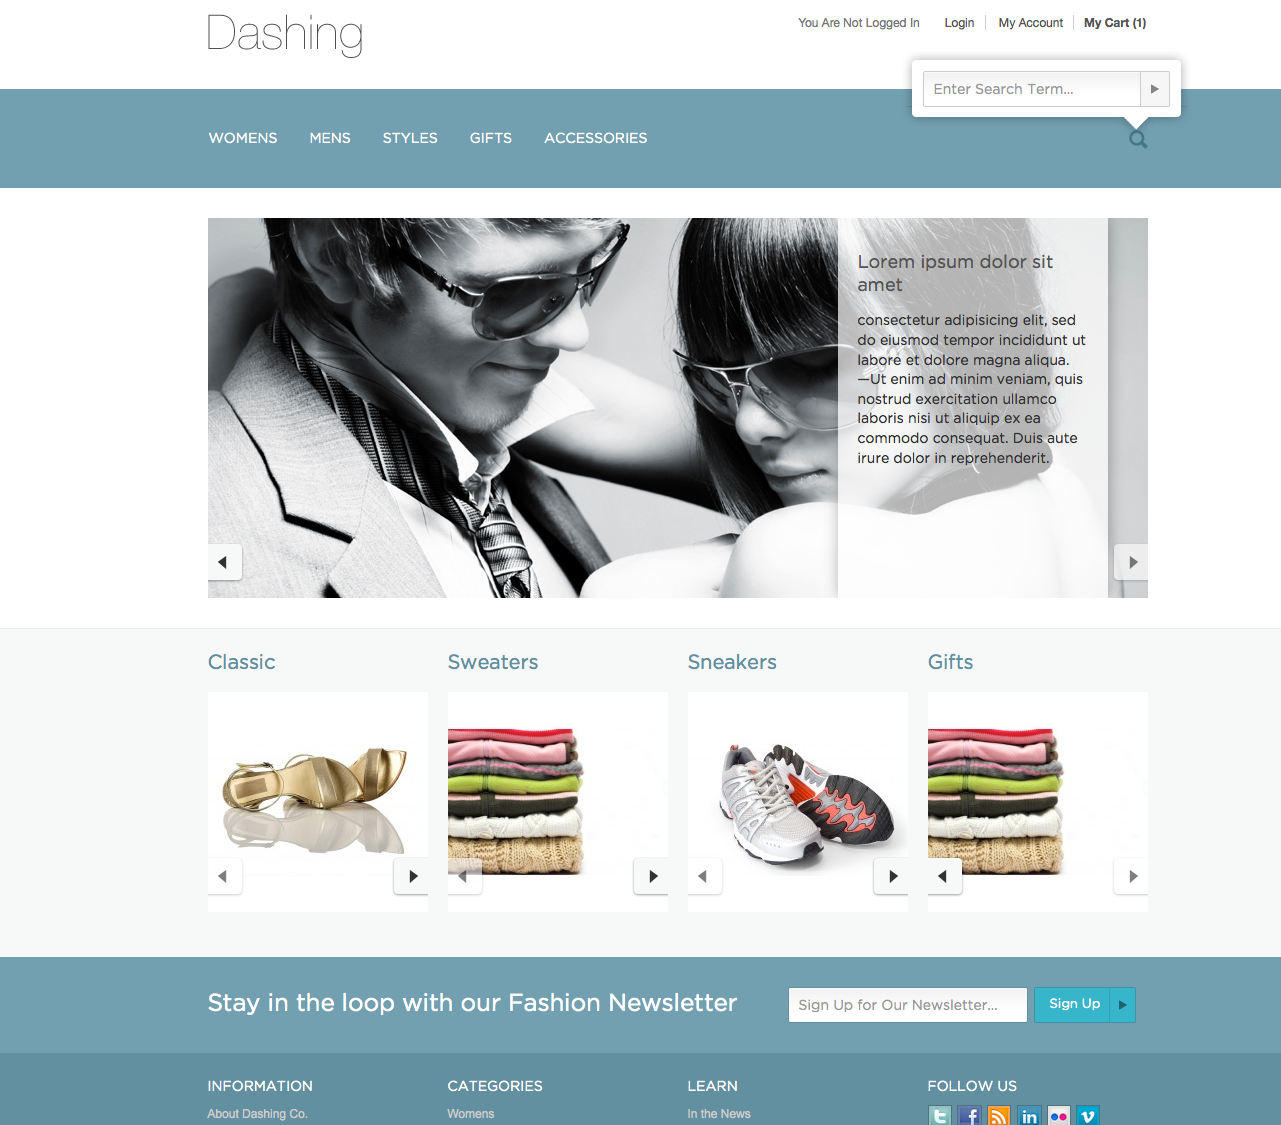 http://0.s3.envato.com/files/4543407/dashing%20magento/03-Home-Hoversearch.png